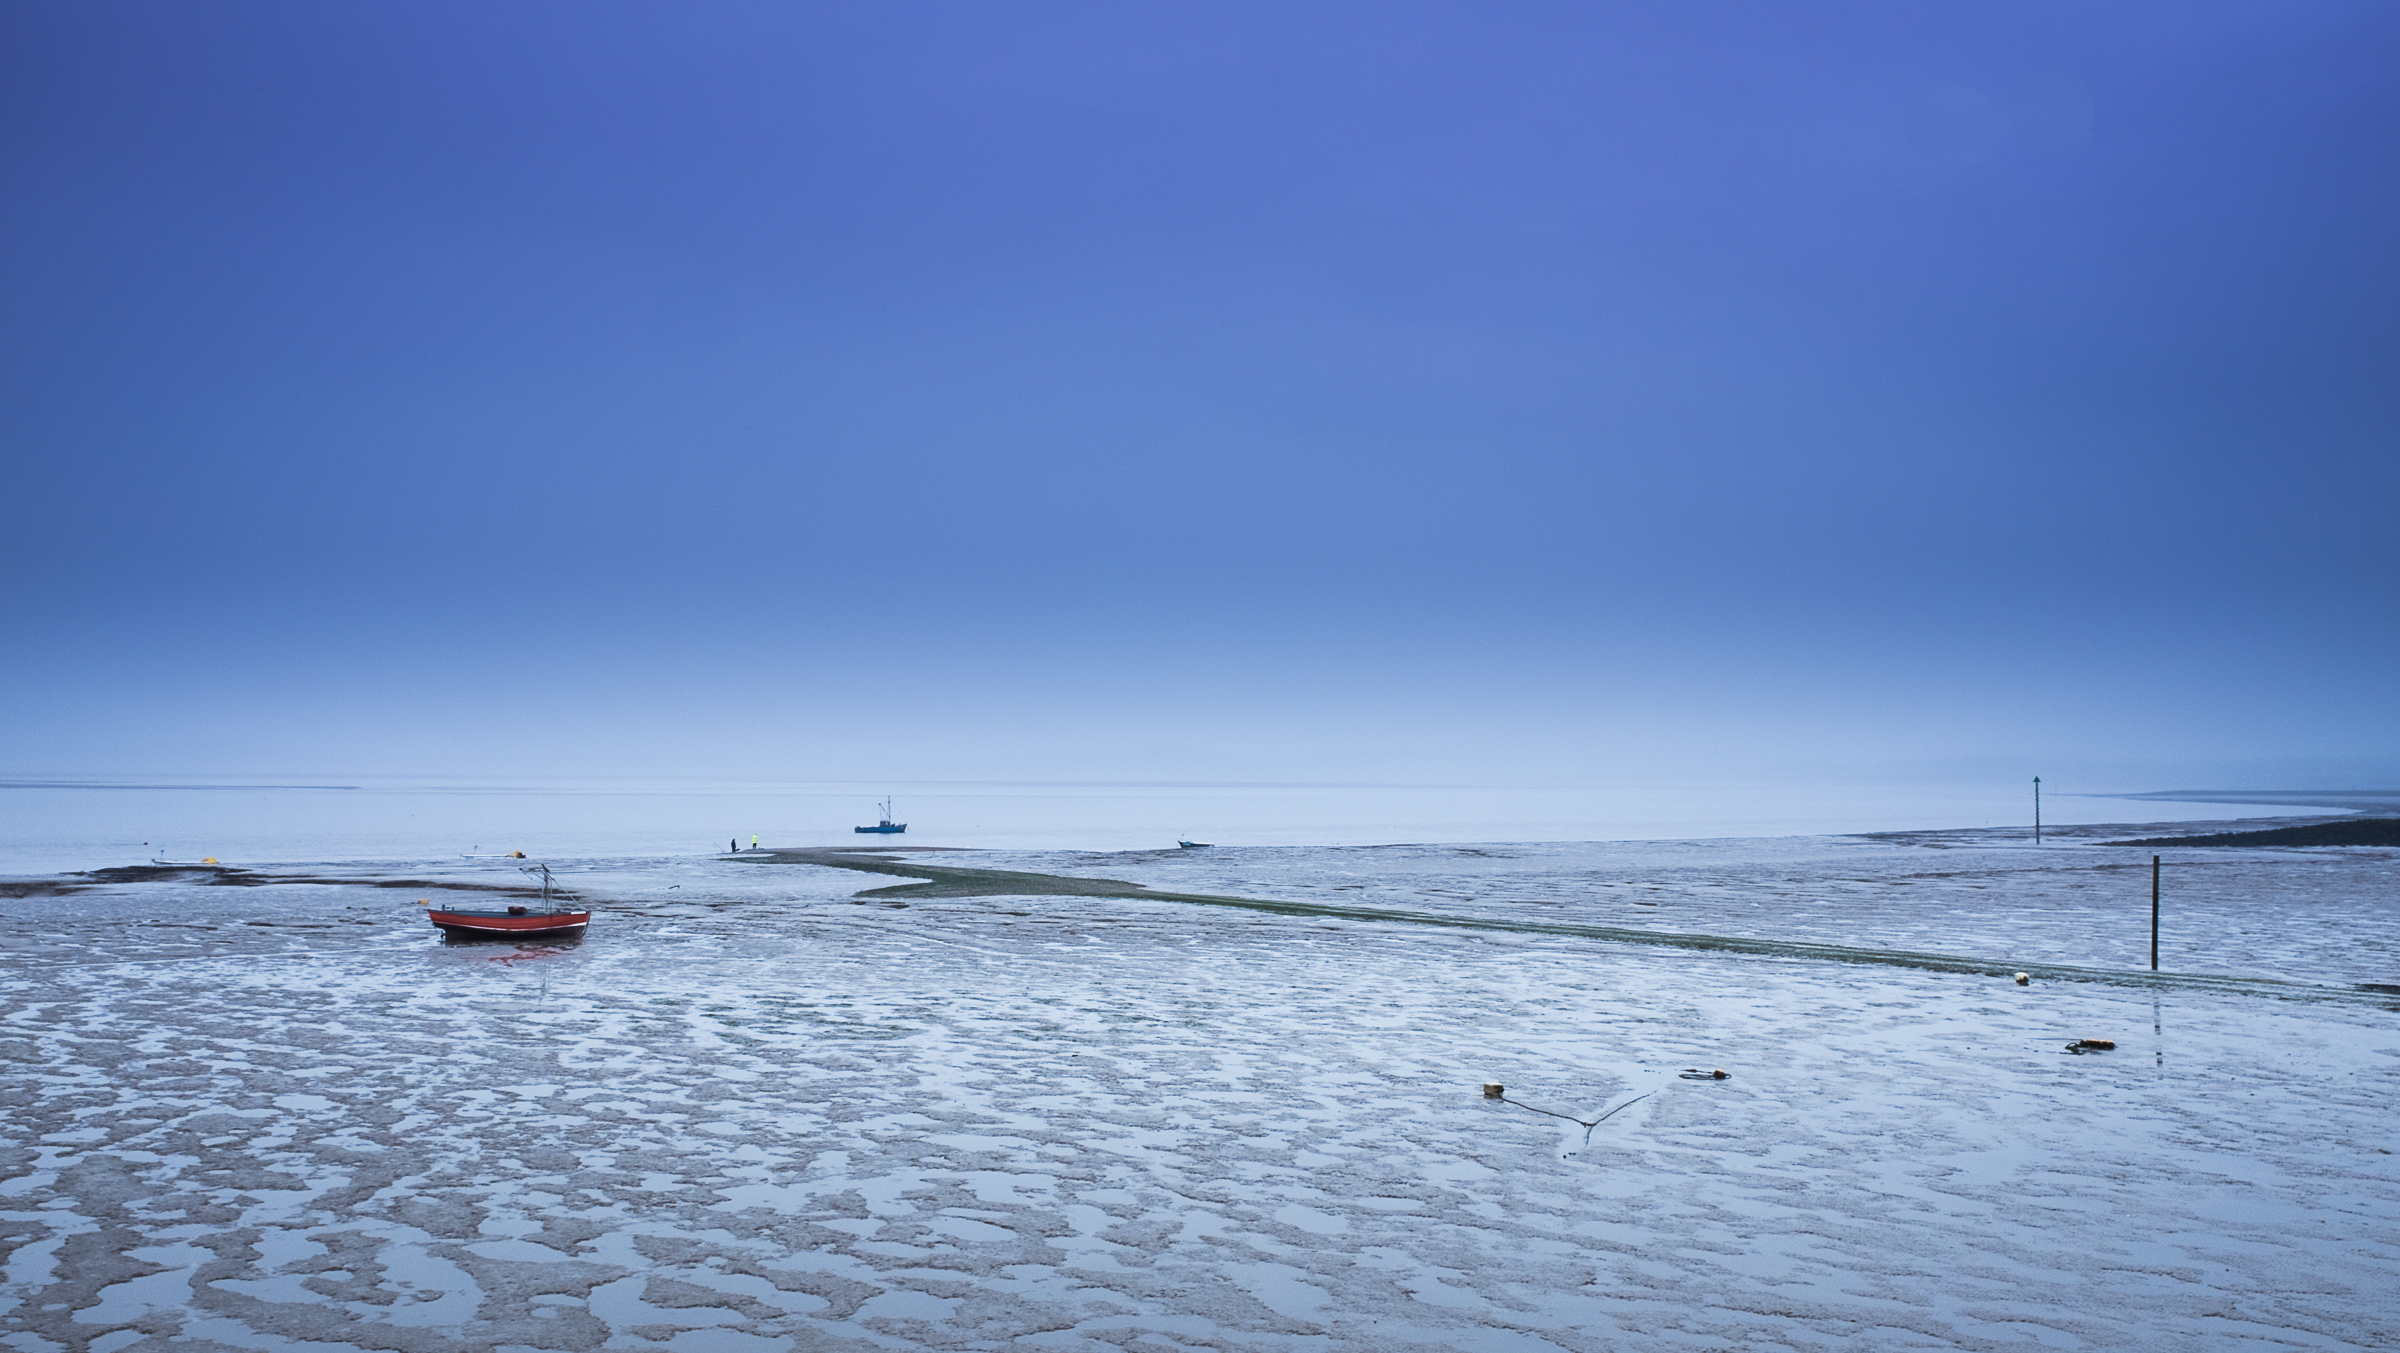 Morecambe Bay, Fuji X70